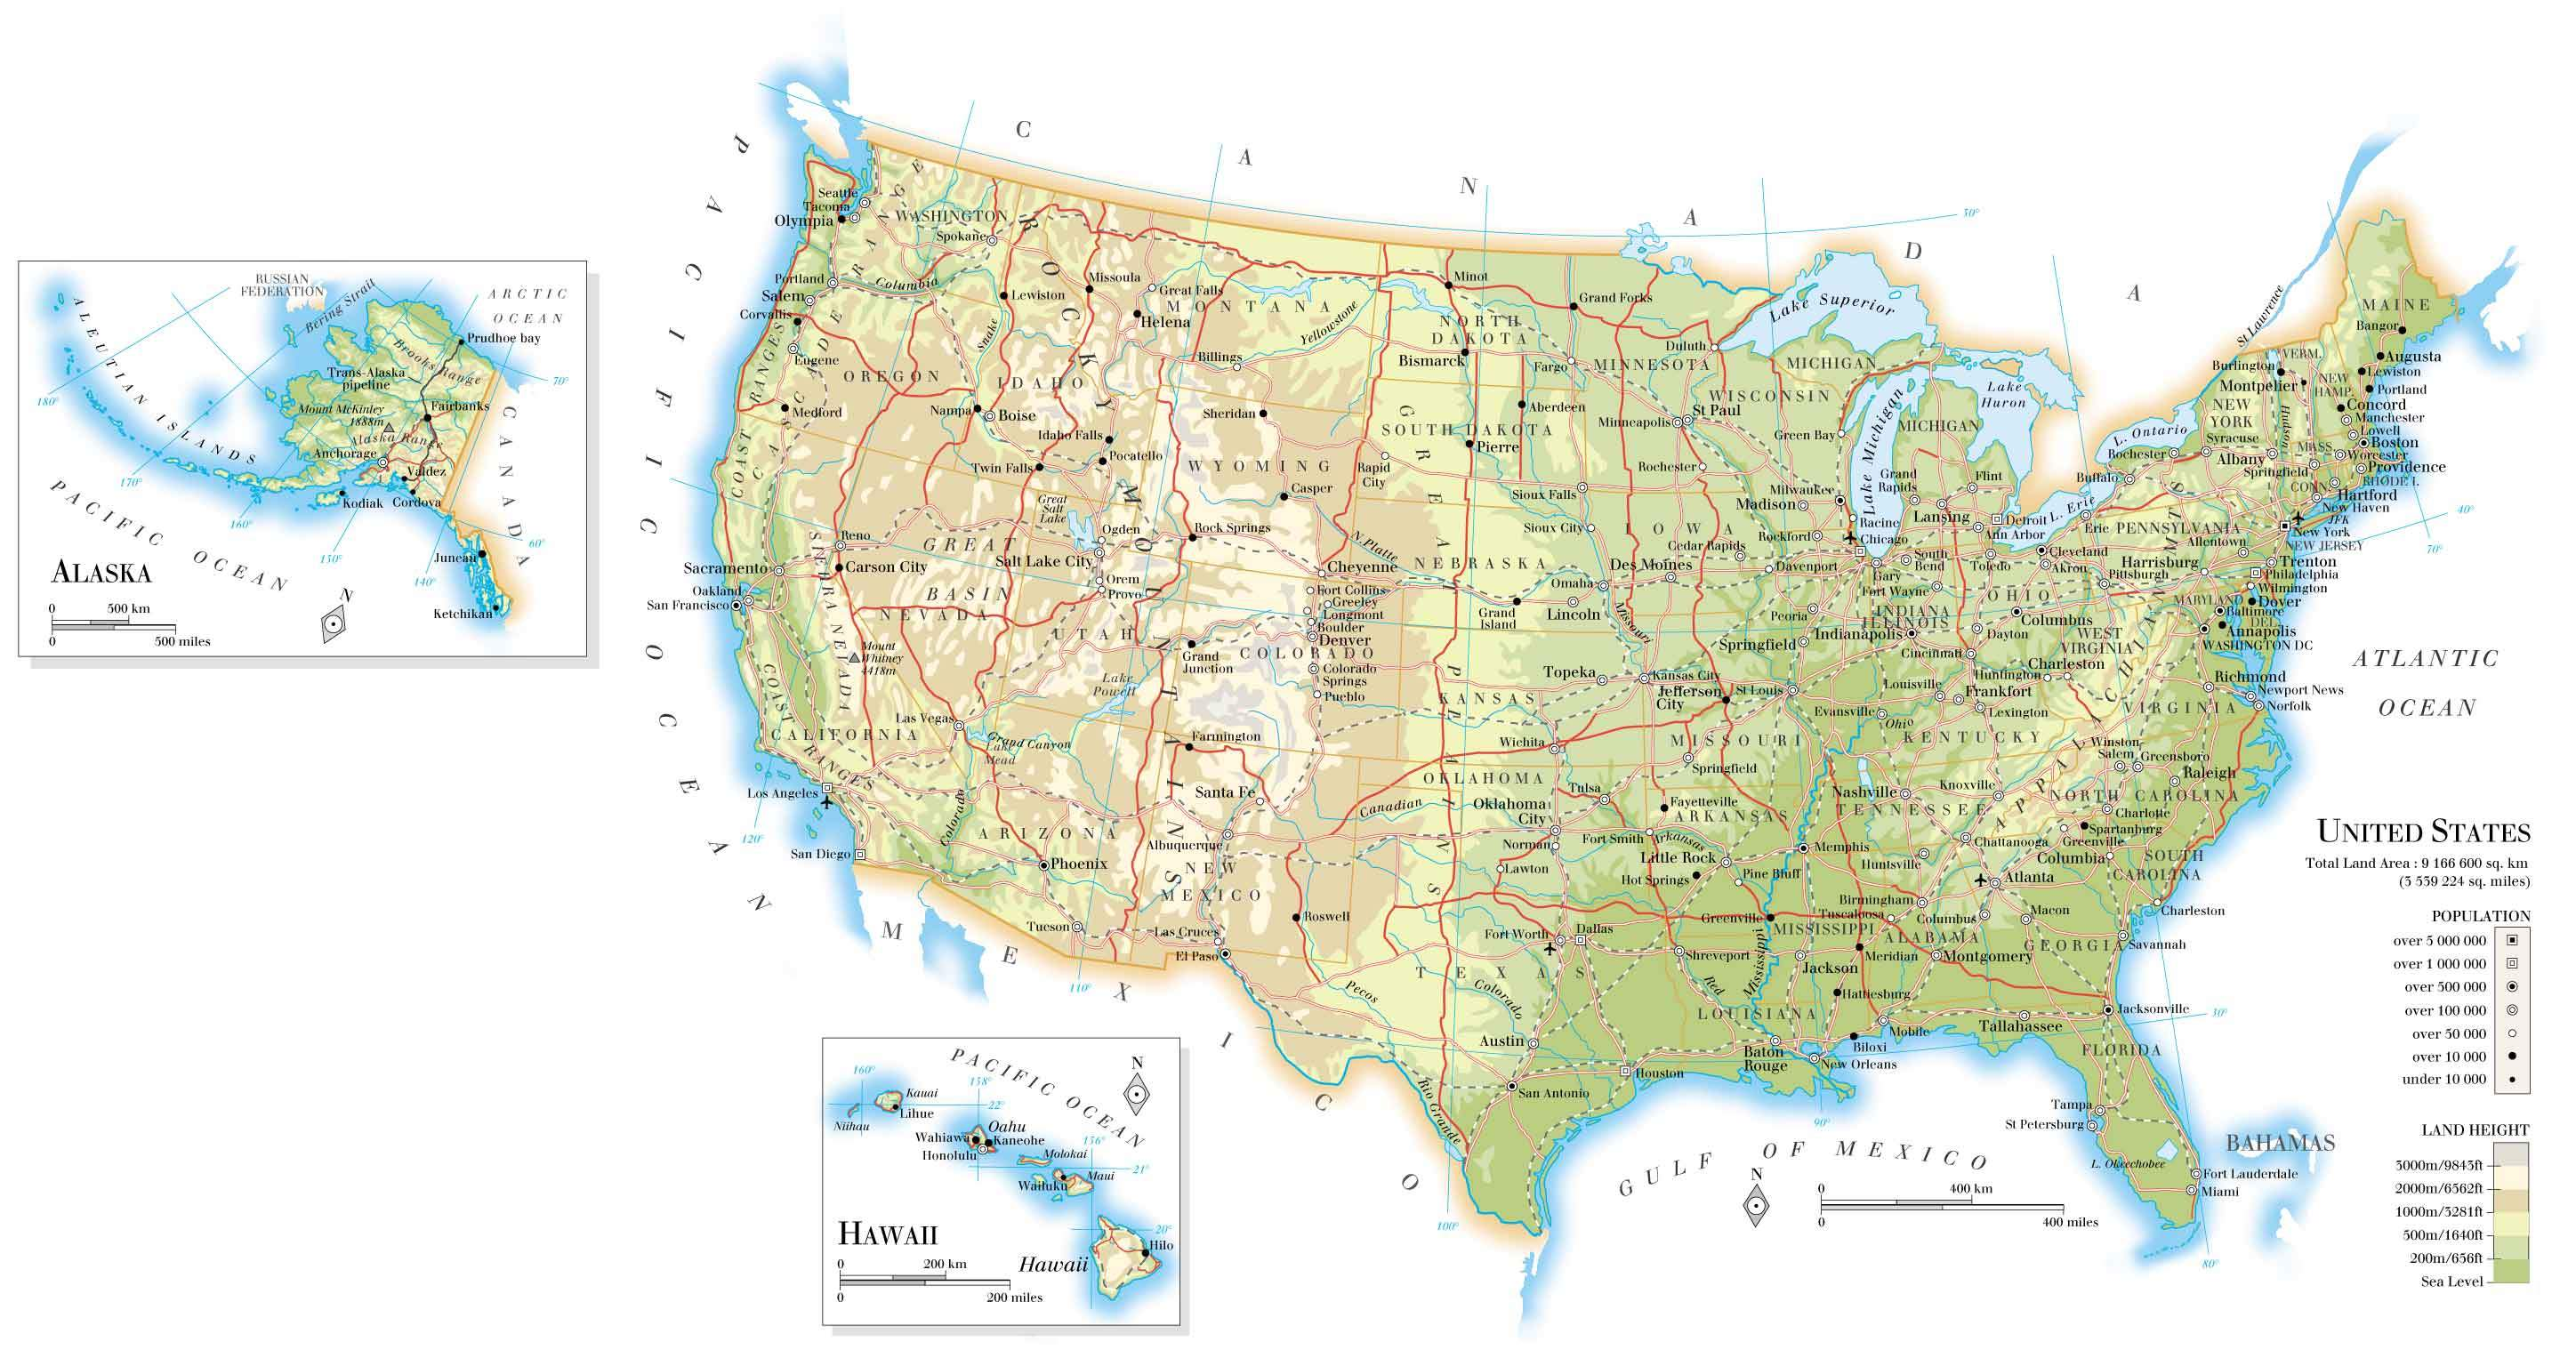 US Maps USA State Maps Maps Of Continents Maps Usa Map Chicago - Map of us roads and cities